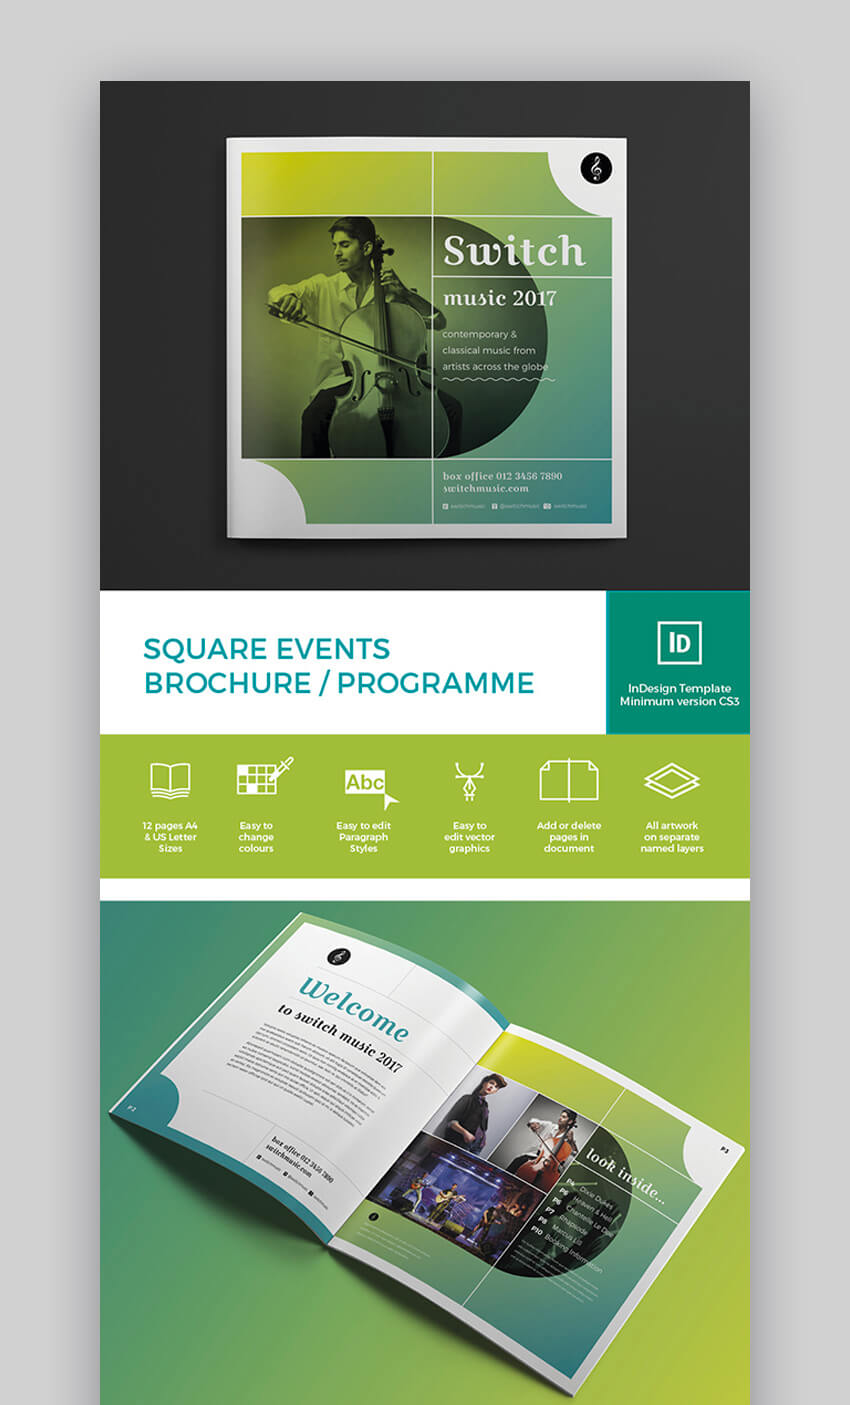 Square Events BrochureProgramme